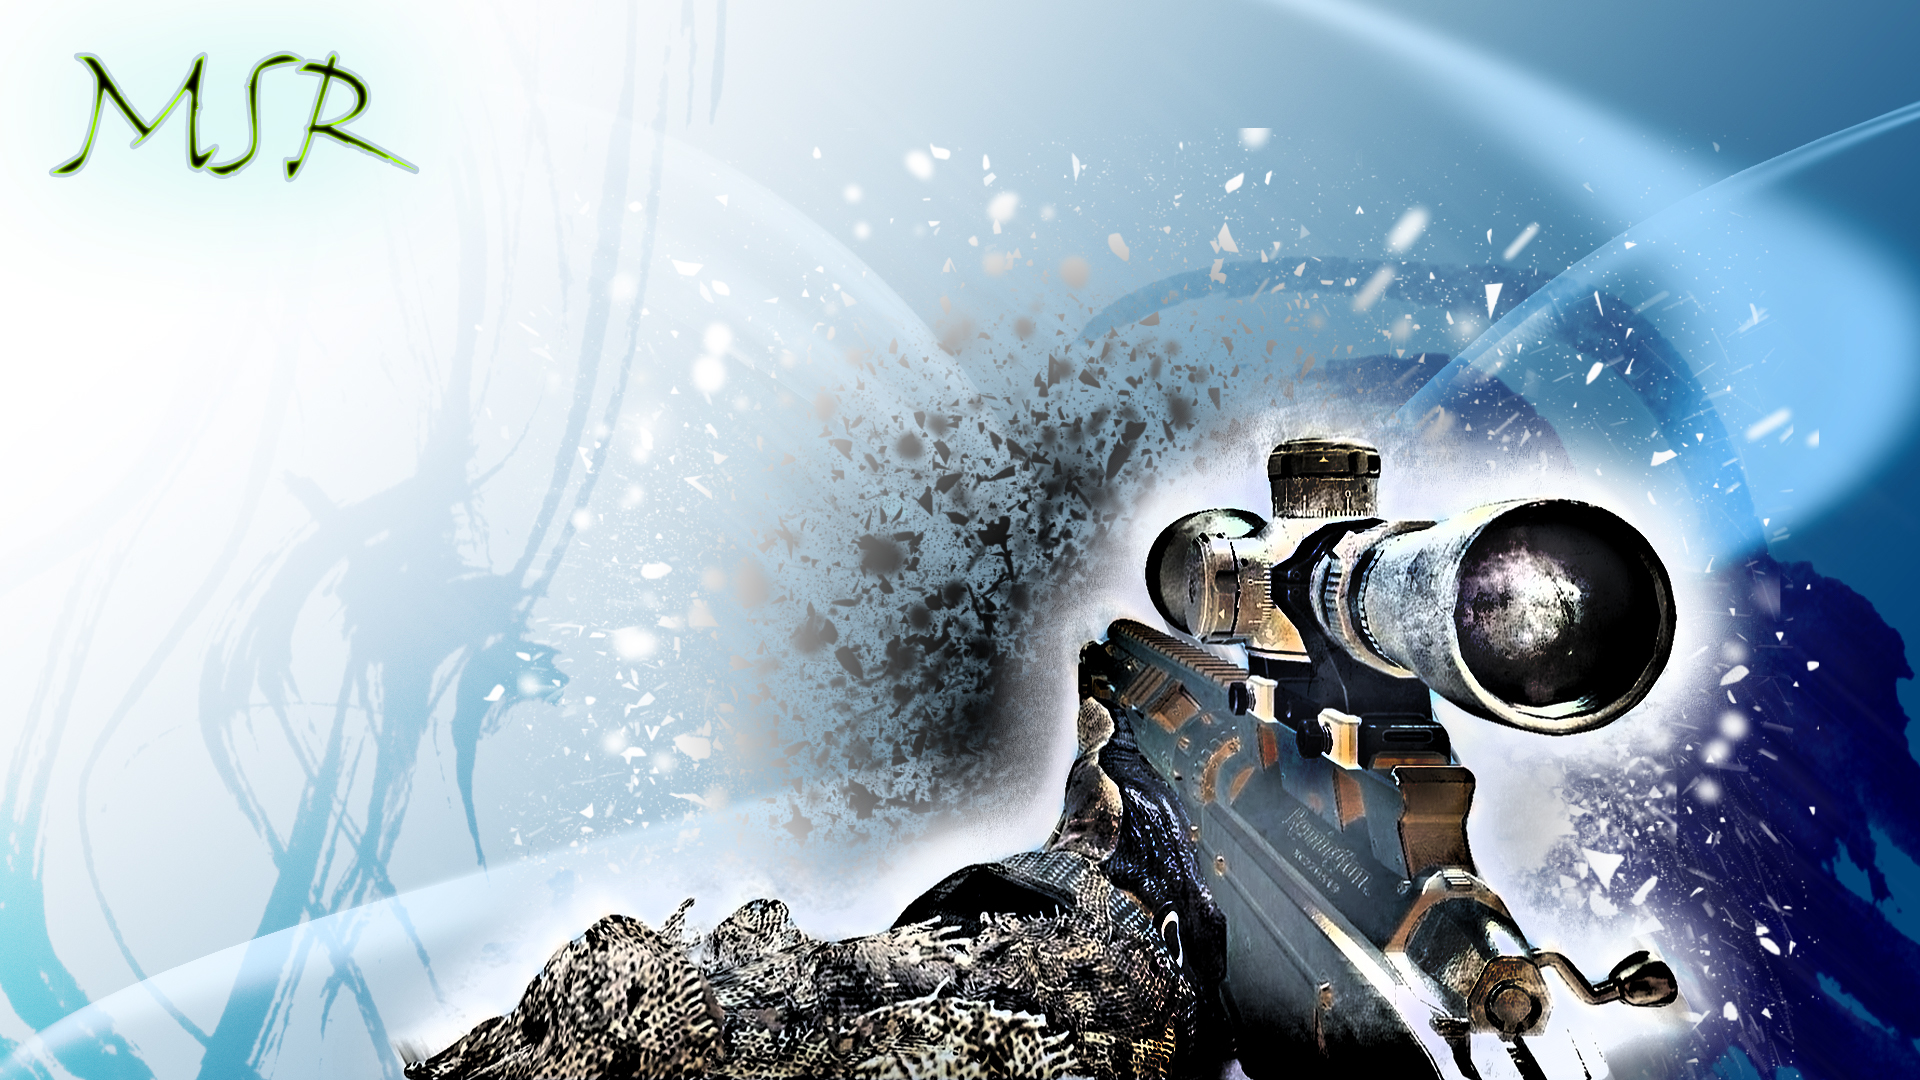 MW3:MSR Background 1920x1080 by micycle on DeviantArt